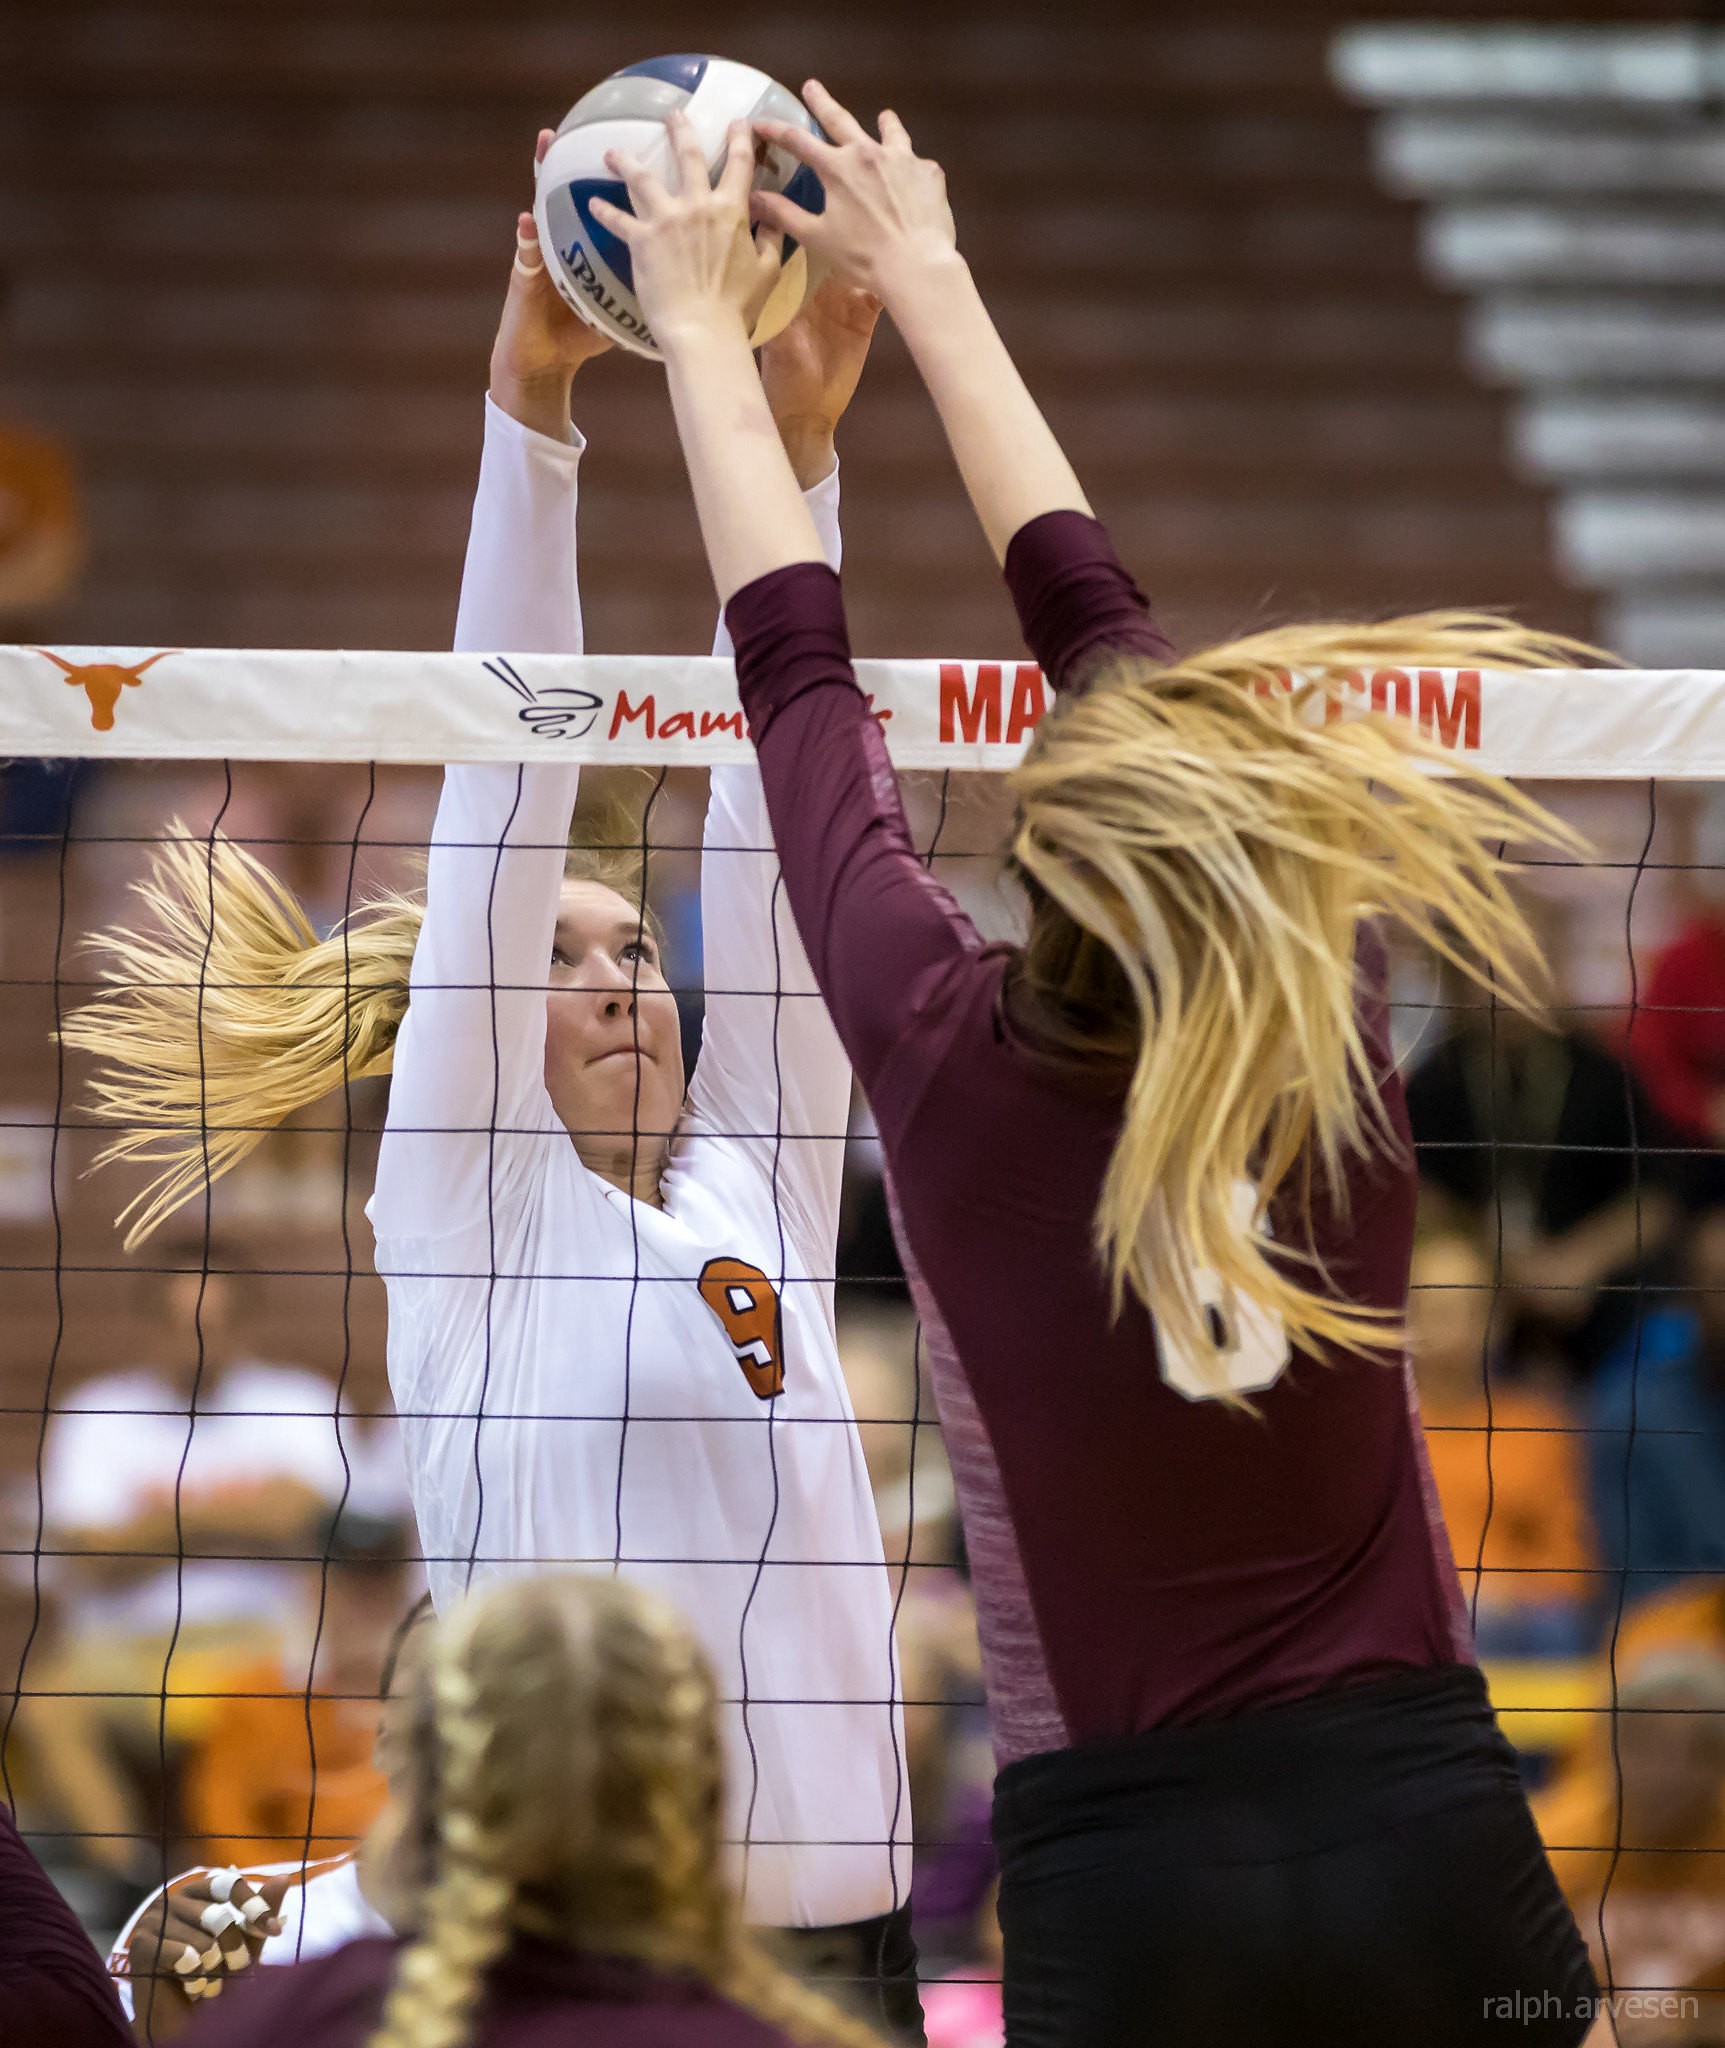 I Describe Volleyball Blocking Terms: If two opposing players go up to contact a ball at the same time over the net, the last player to contact the ball almost always wins (Ralph Aversen)